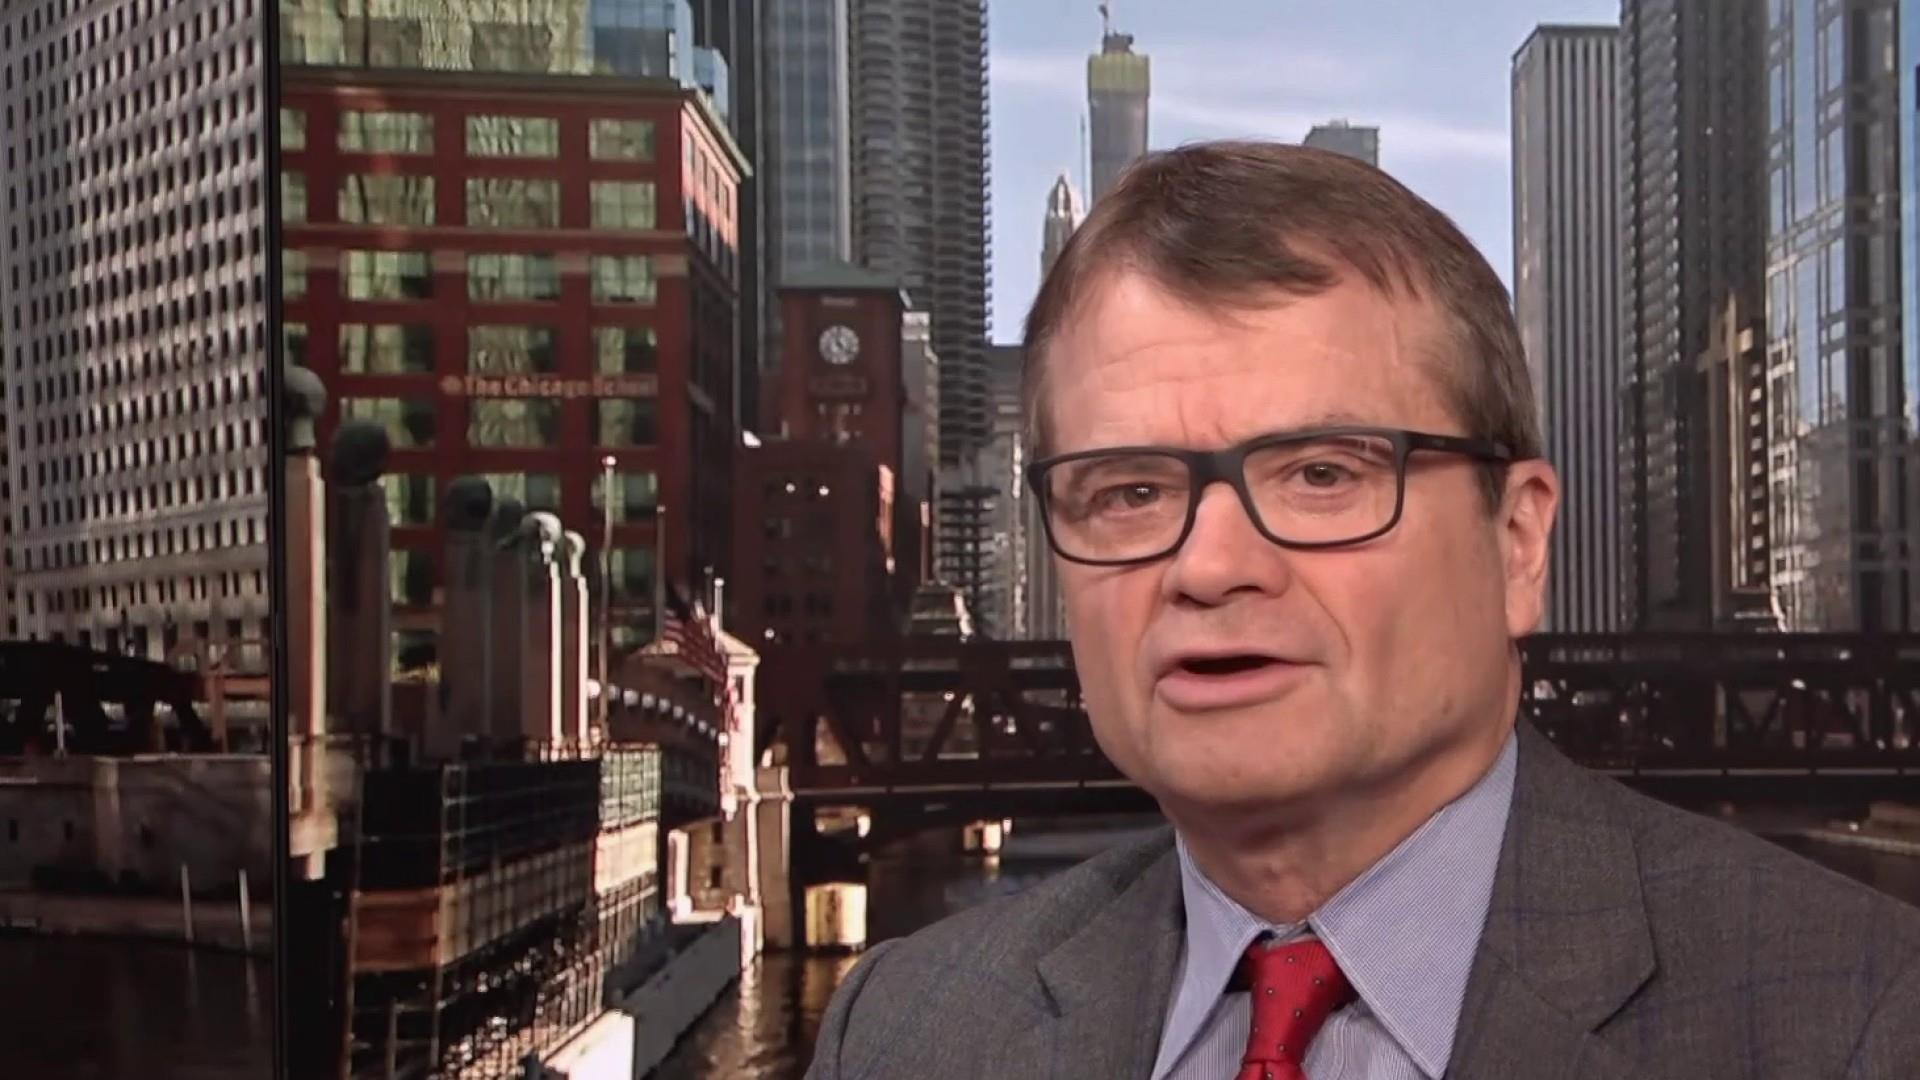 Full Quigley: If Giuliani refuses to cooperate, House could go forward with 'inherent contempt'